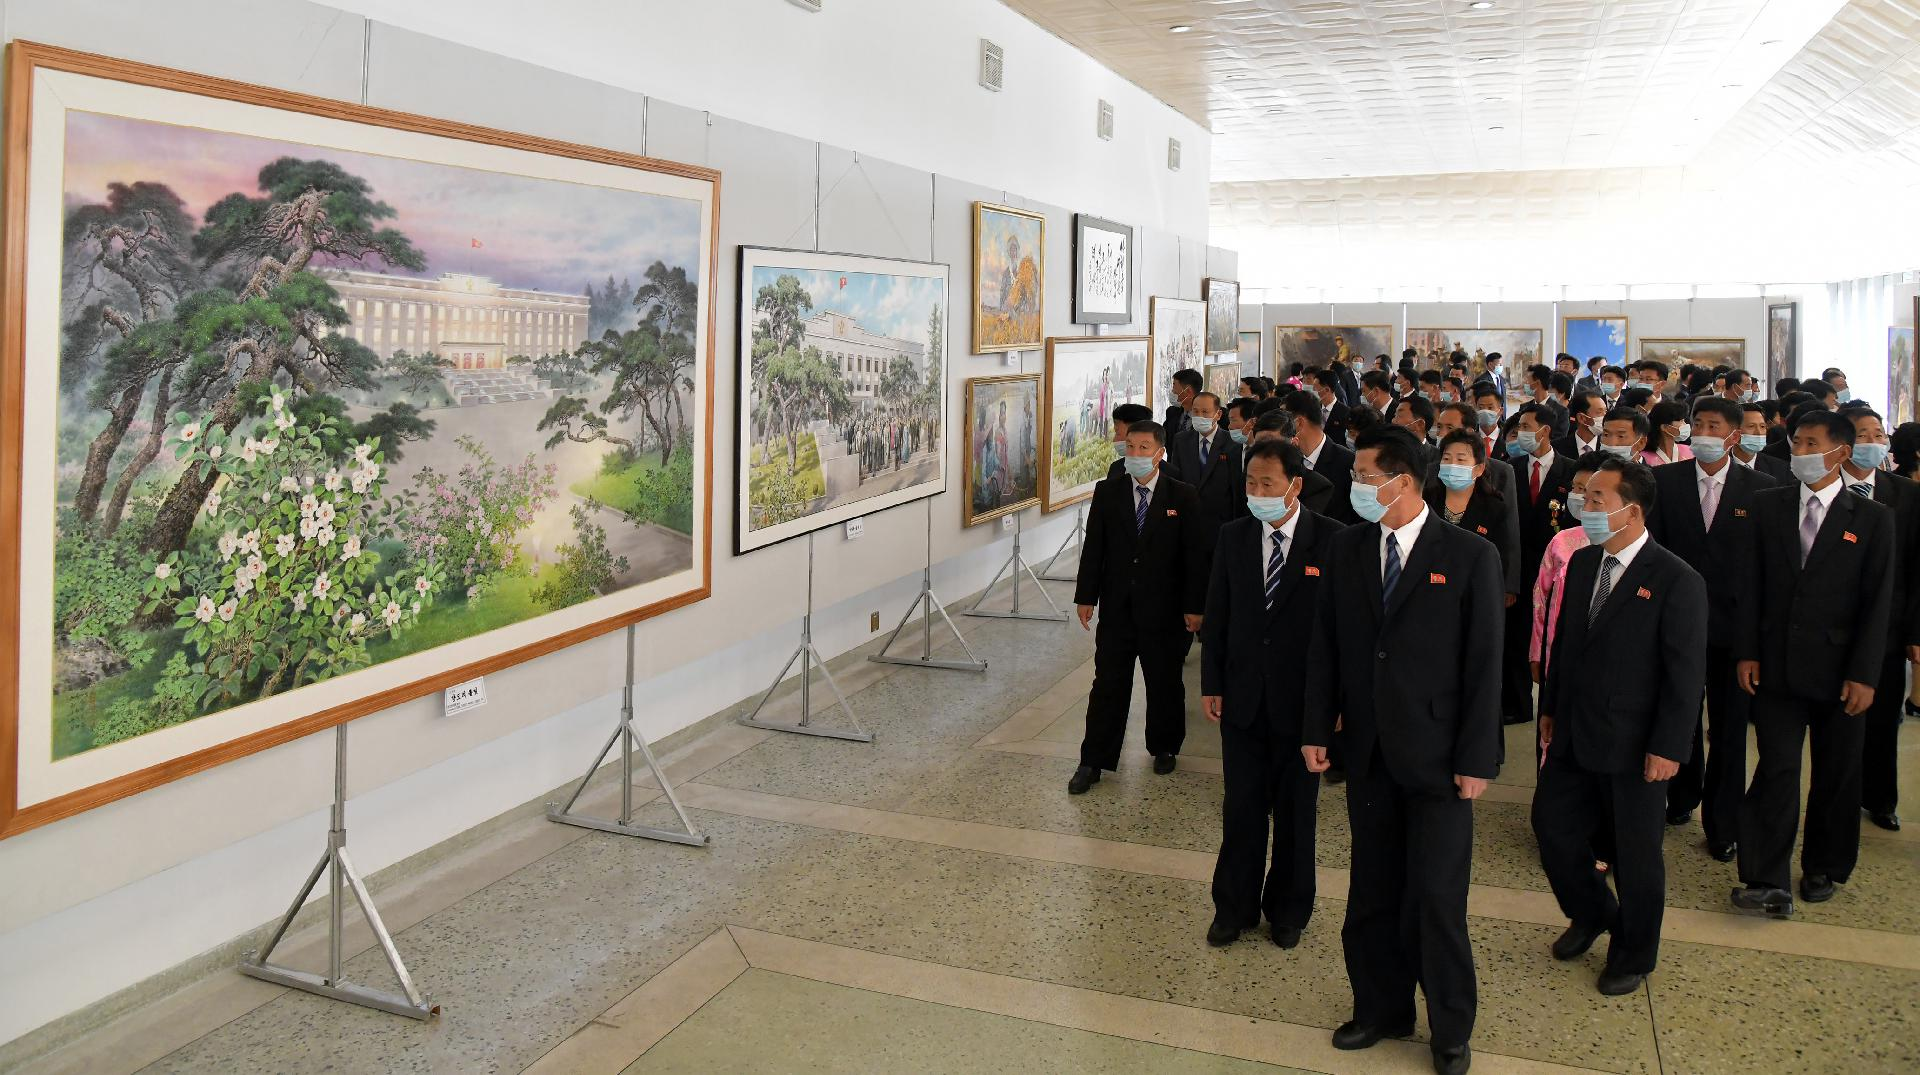 National art festival was opened in celebration for the 75th anniversary of the WPK